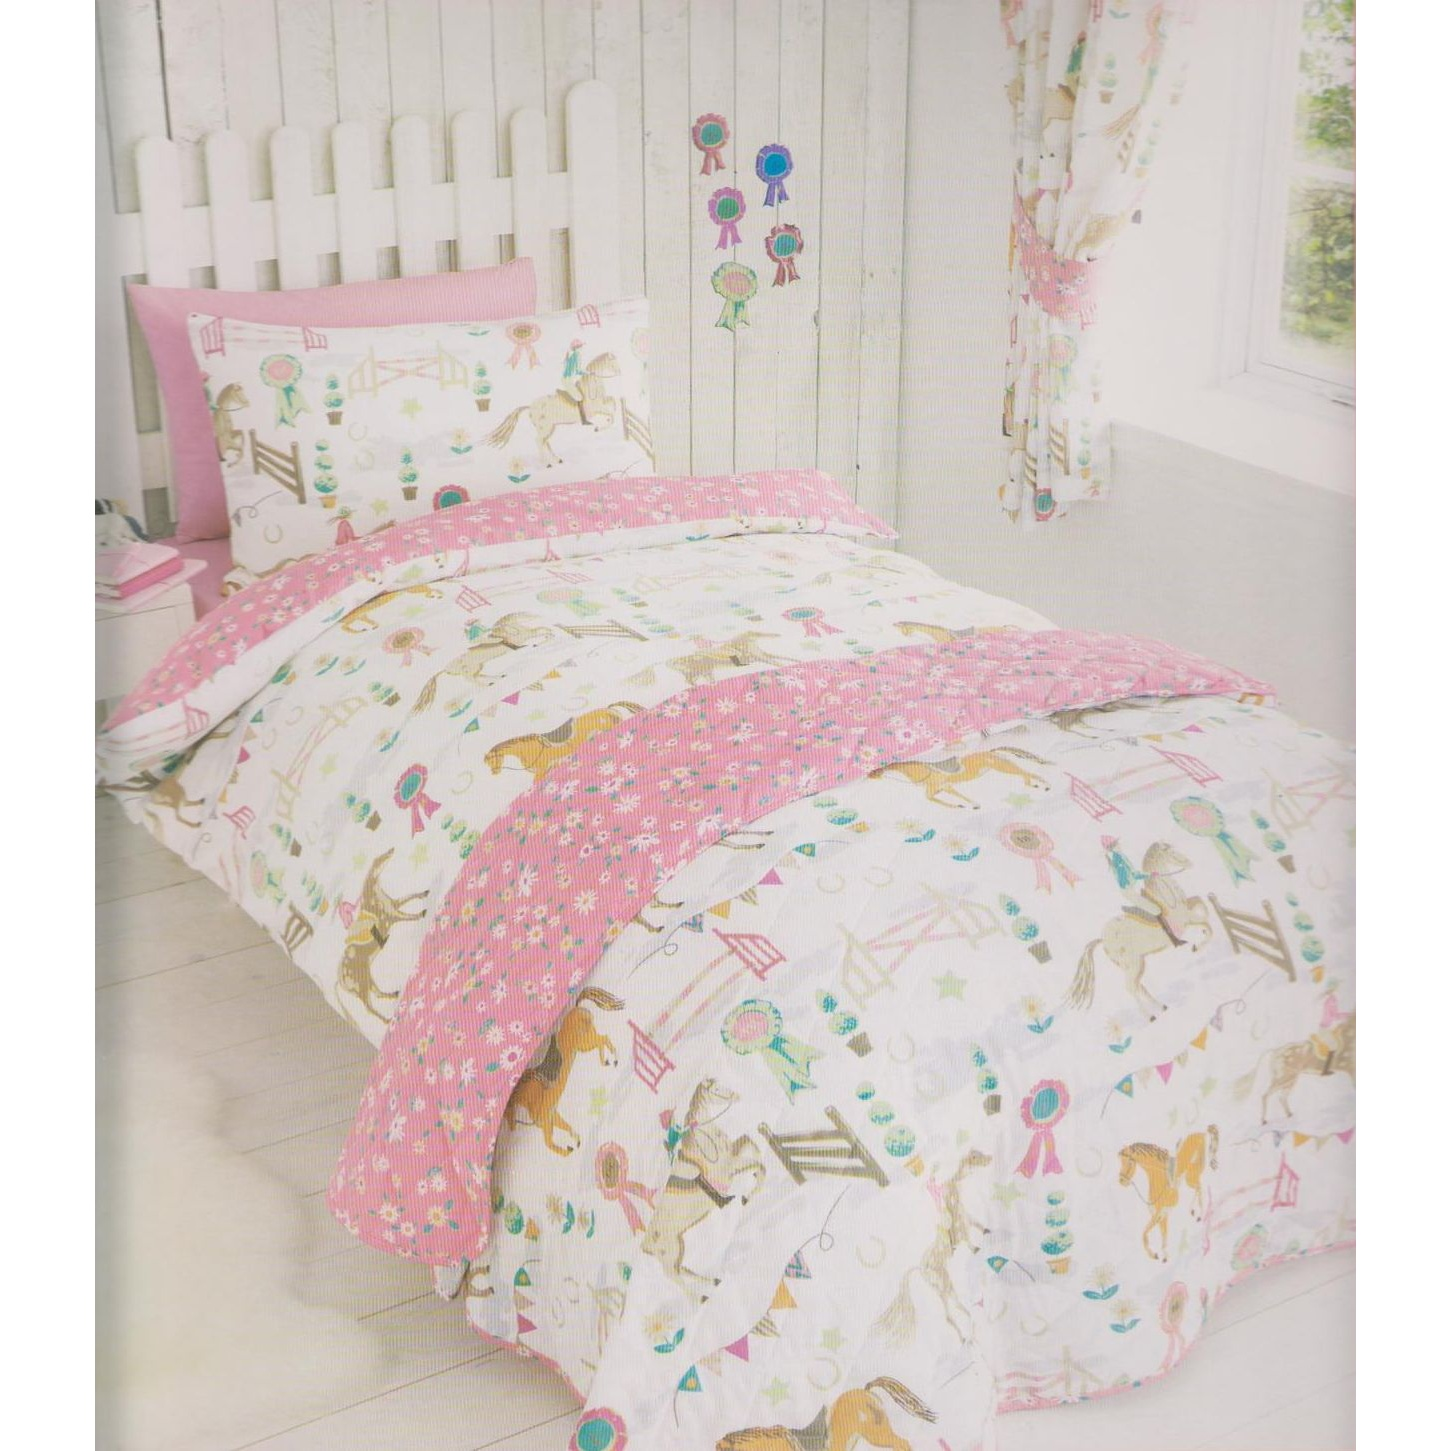 Kids Club Girls Horse Show Quilt Cover Bedding Set (Twin